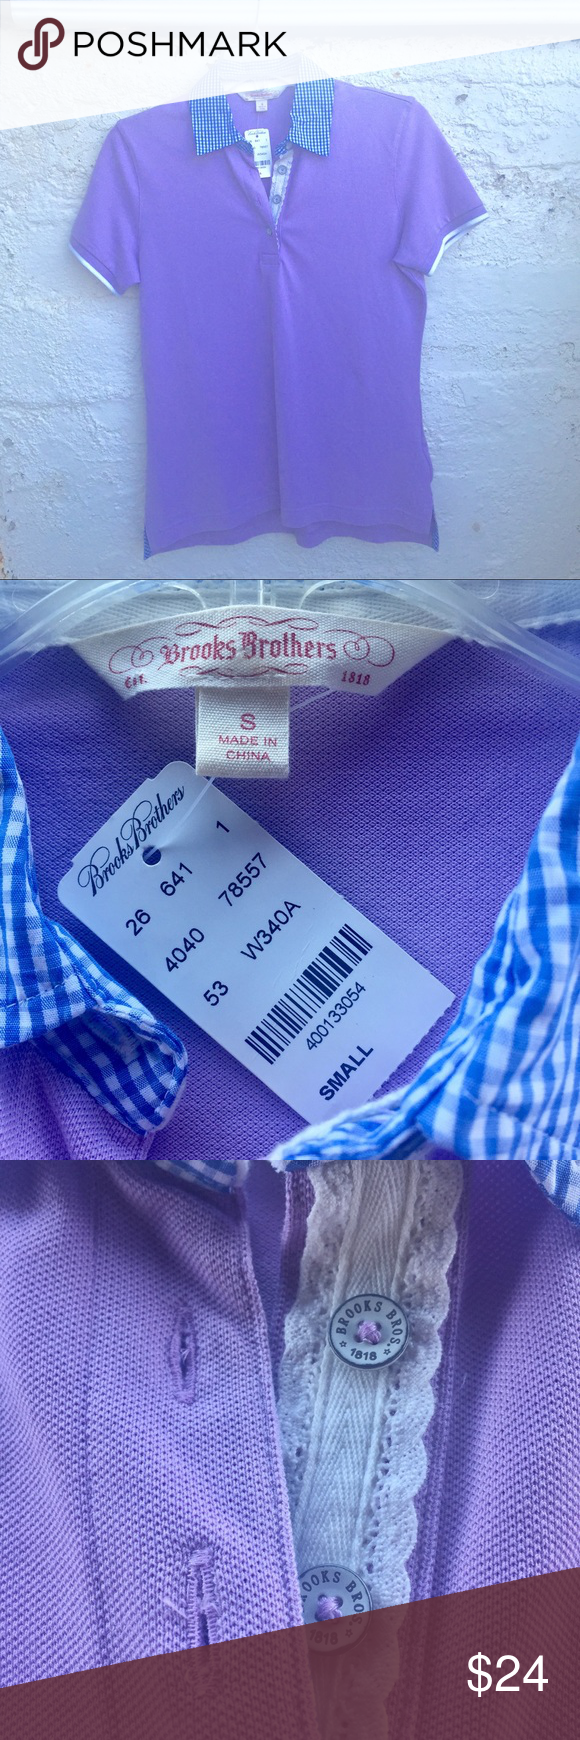 "Brooks Bros - Lavender w/Blue Gingham Collared Top 💜Pretty lavender polo with details: blue gingham checked collar and lined side slits, white piping around the sleeve, lace beneath buttons, 96% cotton, 4% spandex, ~18"" across the bust and ~24"" from shoulder to hem. Thank you for visiting my closet❣️ Brooks Brothers Tops"